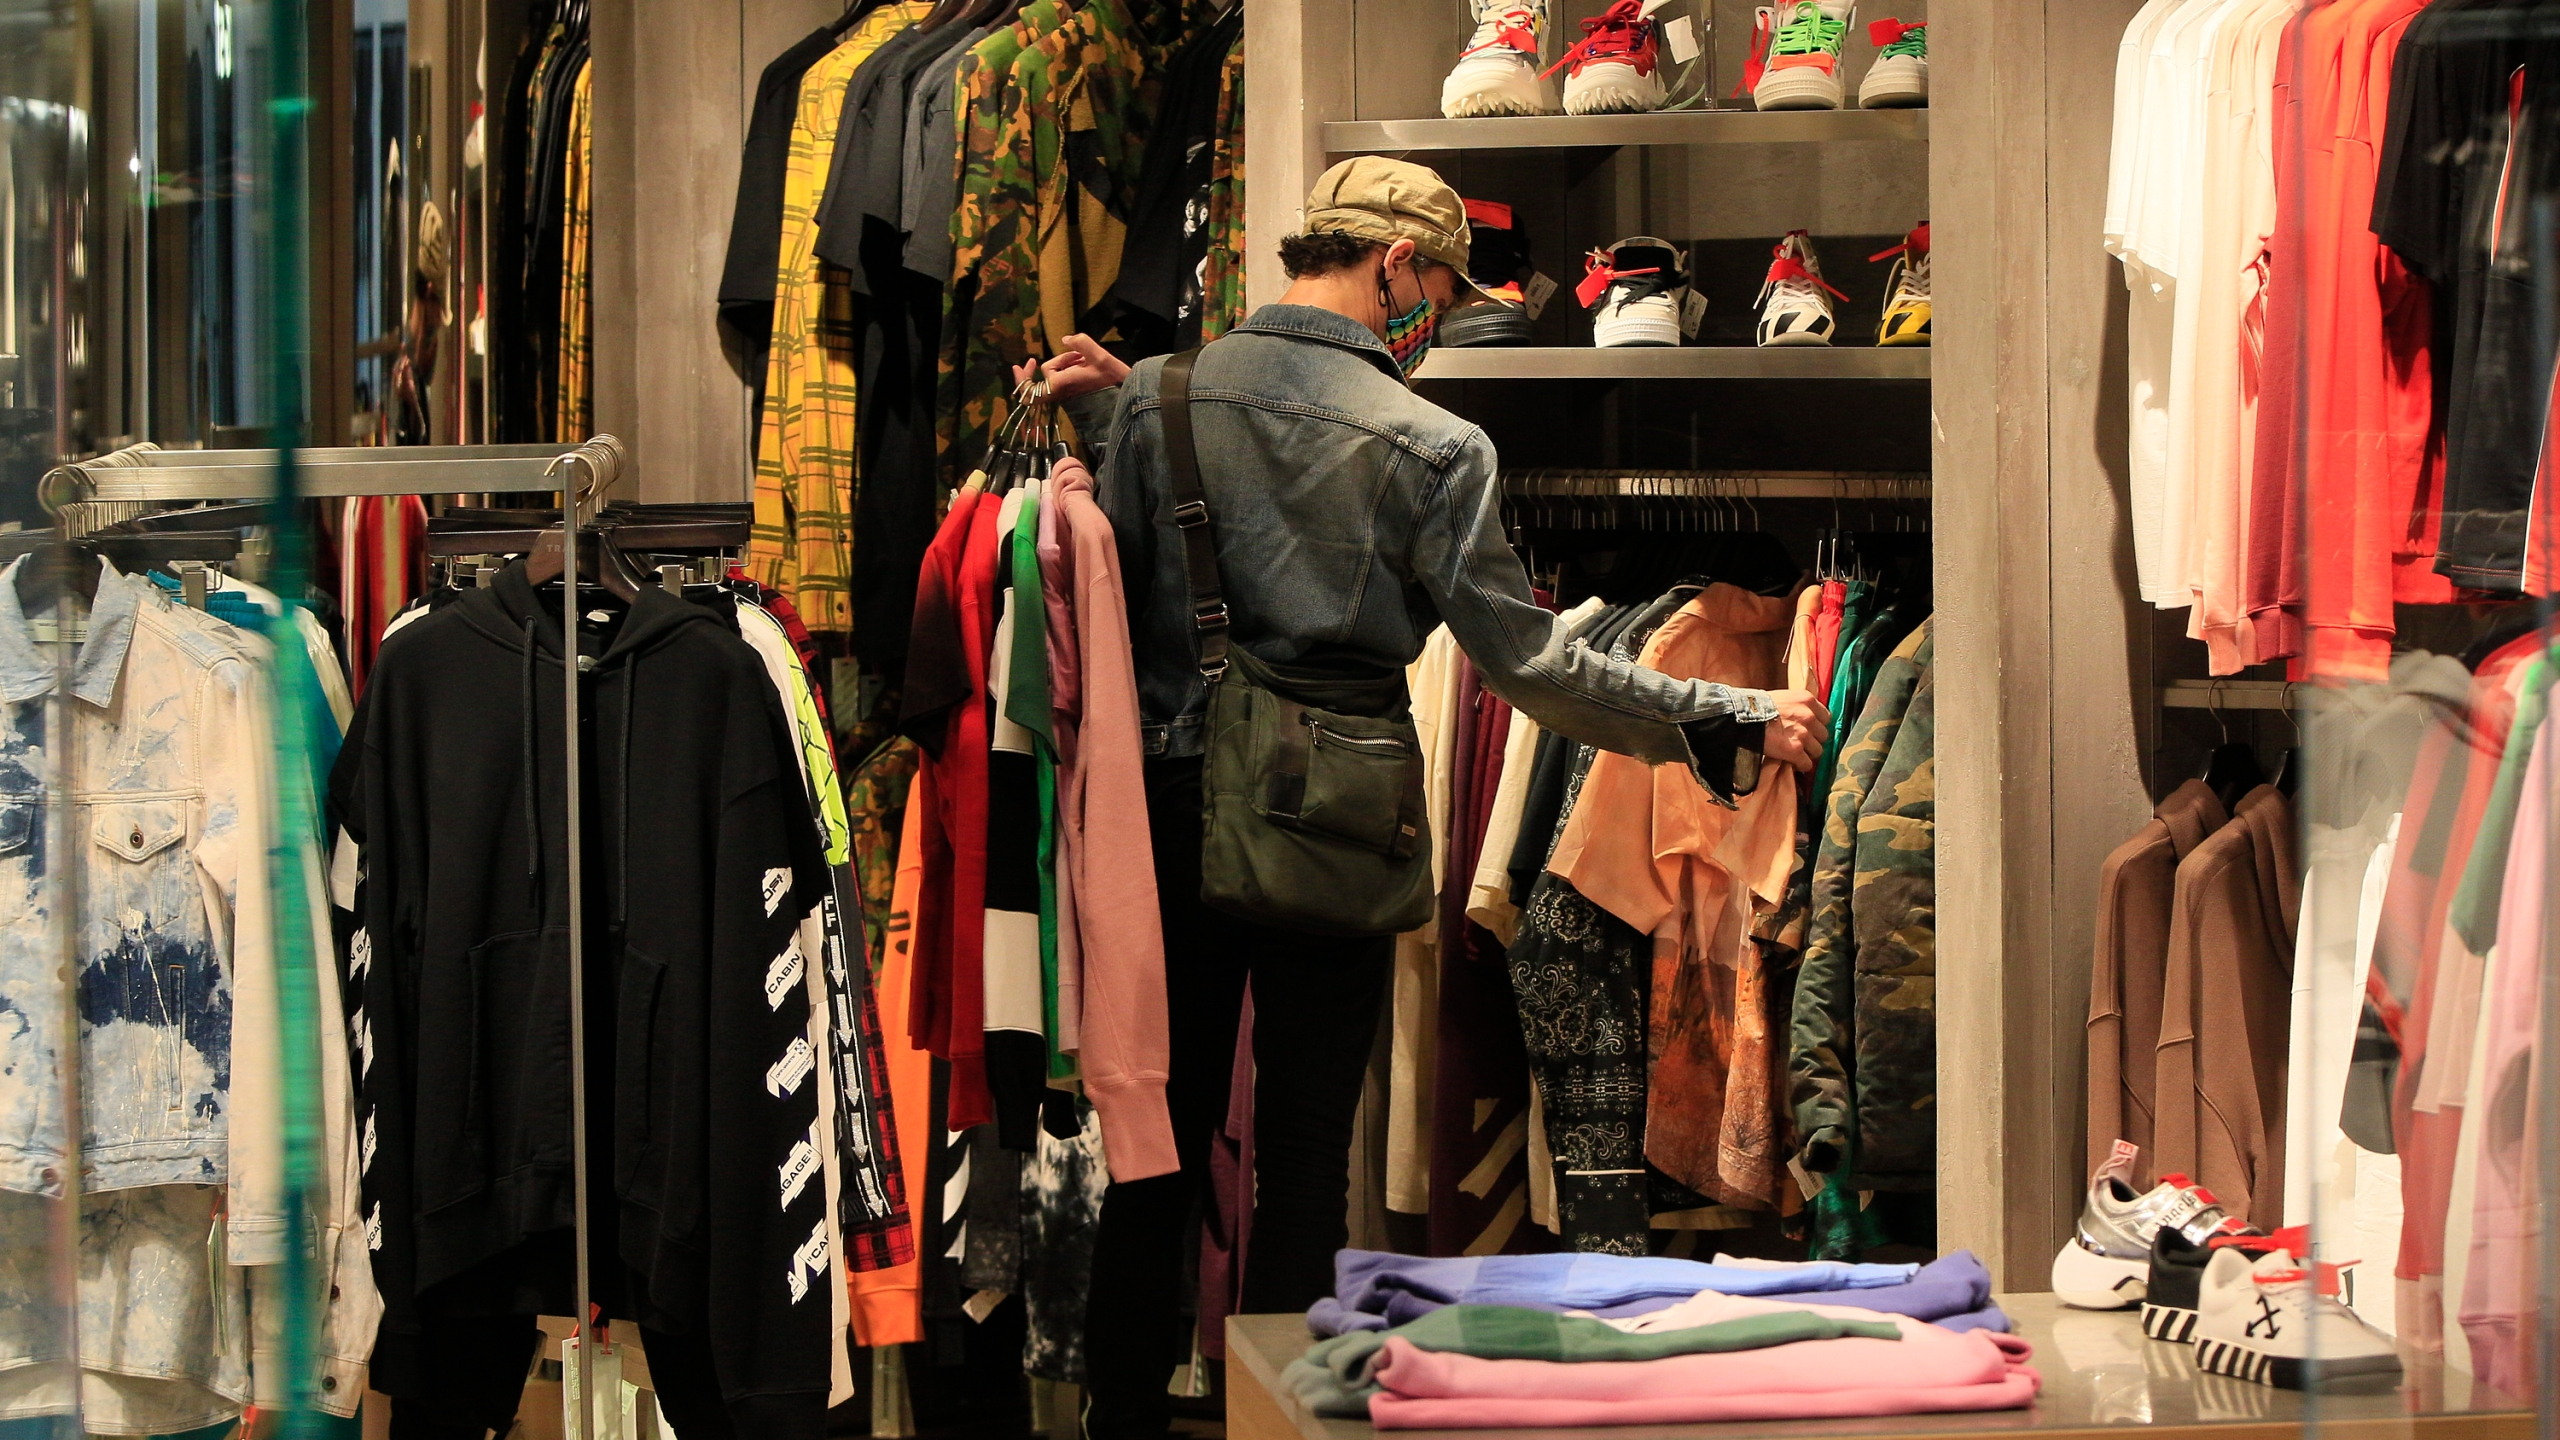 A manager at a boutique sets up new clothes for the store opening of Beverly Center shopping mall in Los Angeles on May 29, 2020. (AP Photo/Damian Dovarganes)